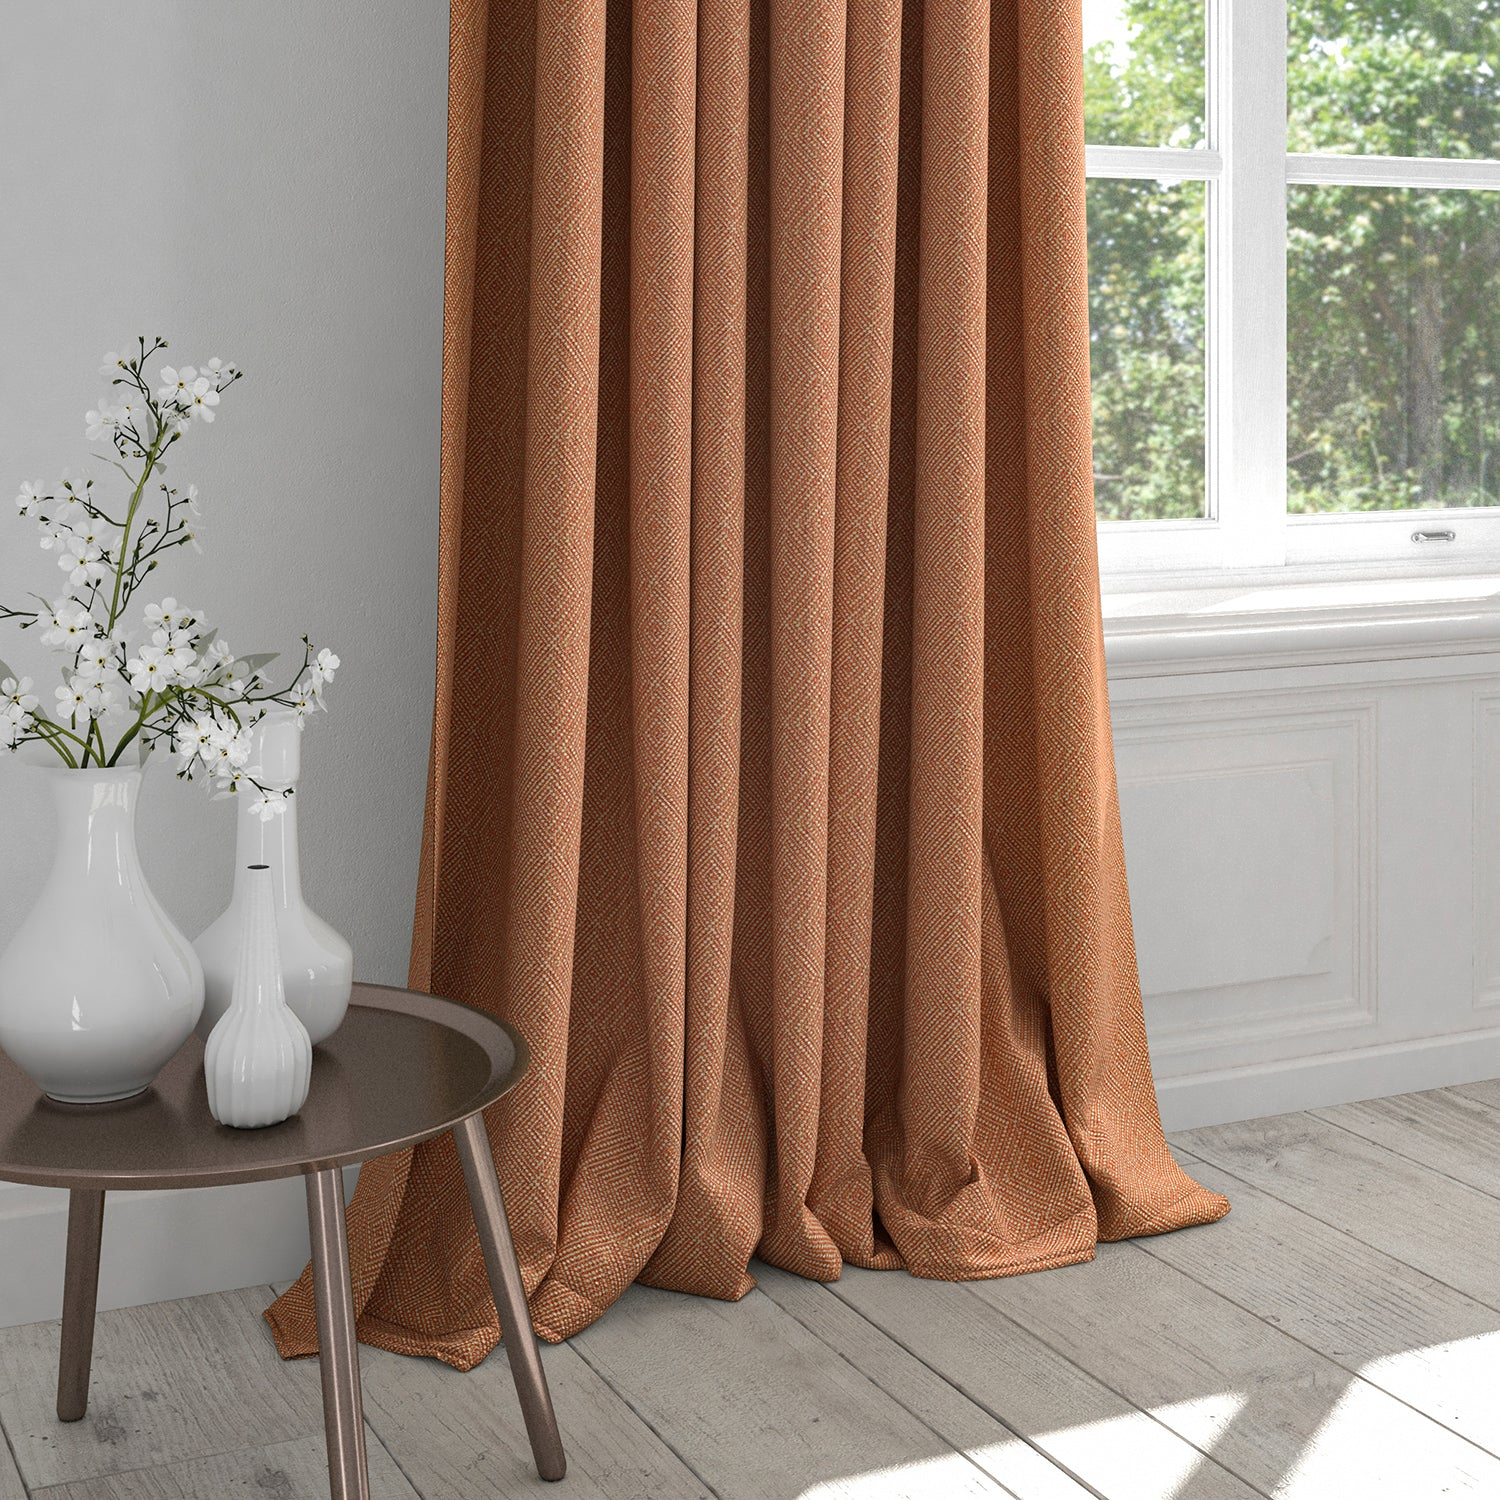 Curtain in an orange fabric with a light woven geometric design